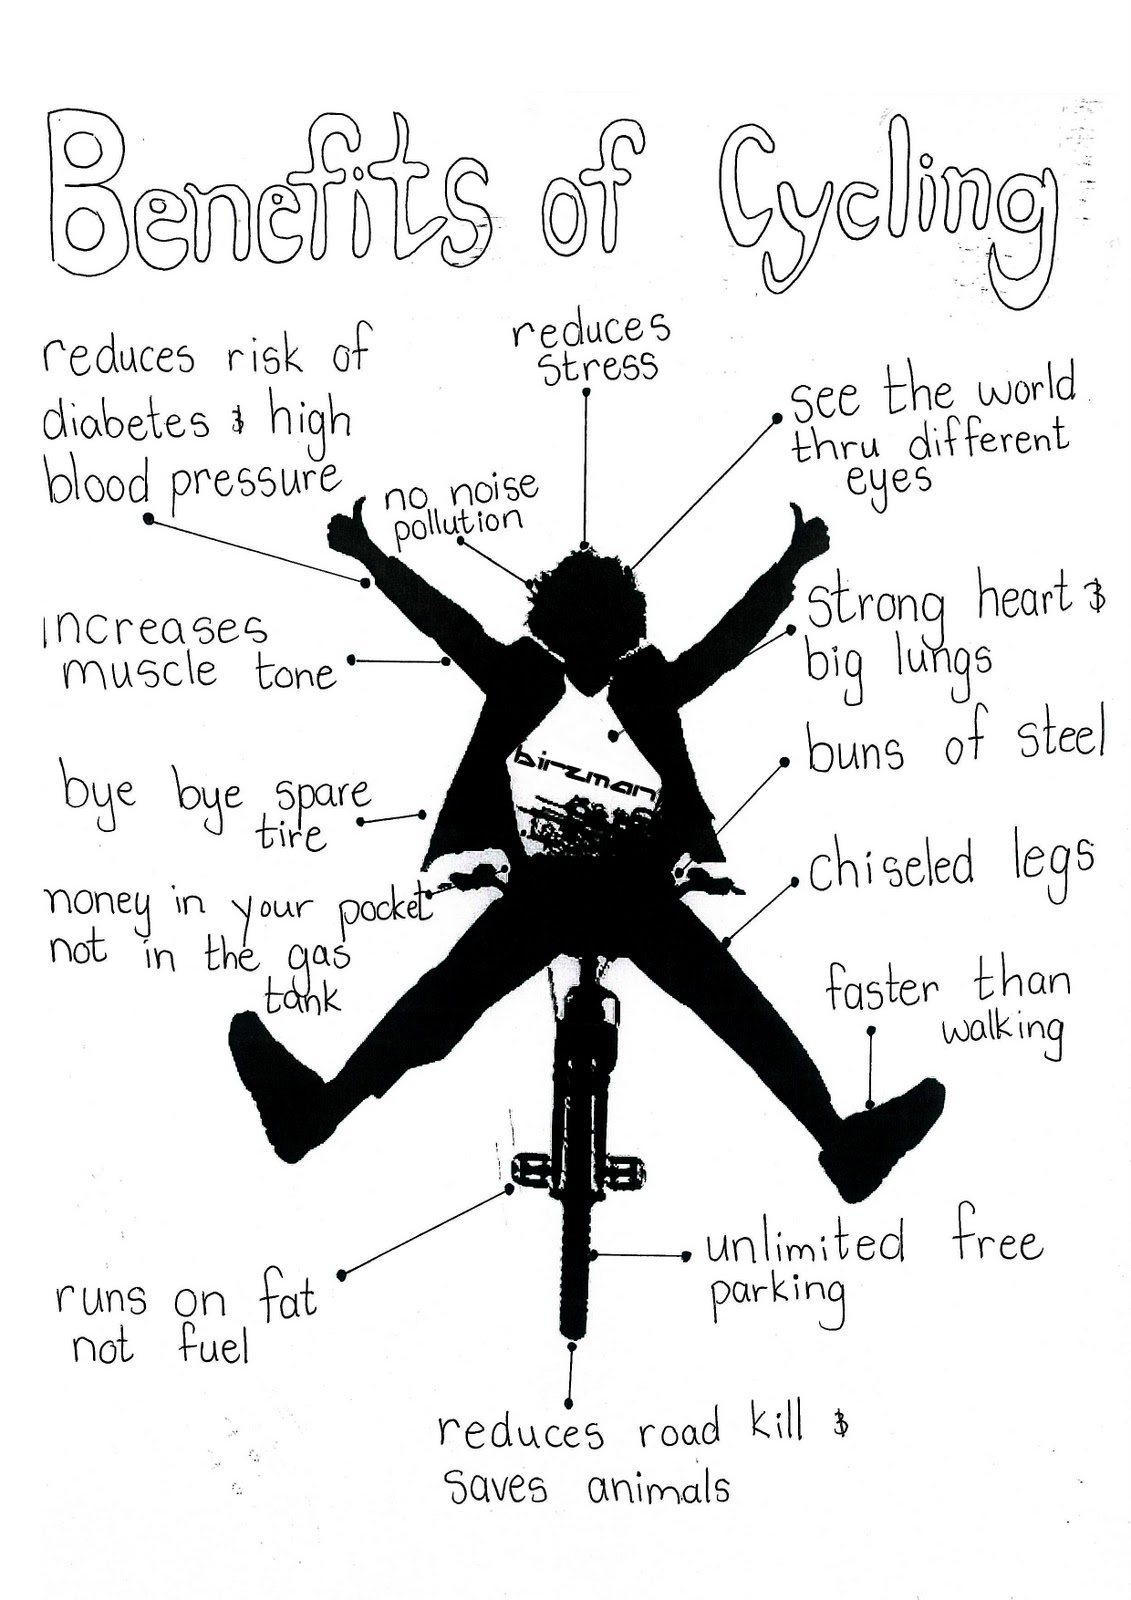 These are the benefits of cycling that might be classified as healthy.